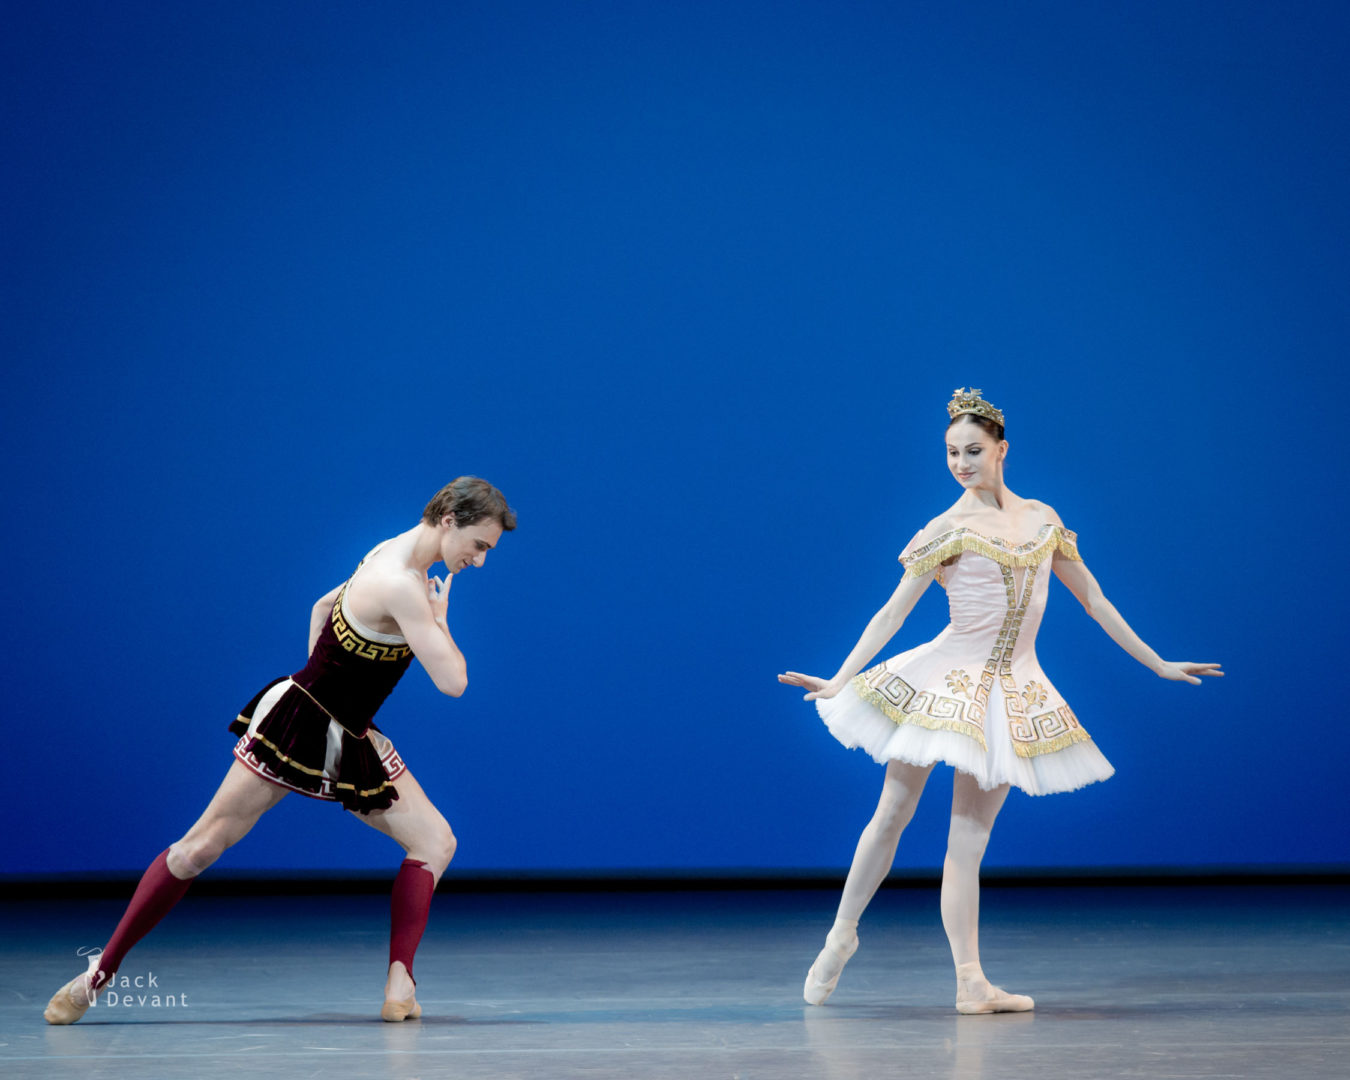 Oksana Skorik (Rus. Оксана Скорик) and Philipp Stepin (Rus. Филипп Стёпин) in Sylvia, music by Léo Delibes, choreography by Frederick Ashton